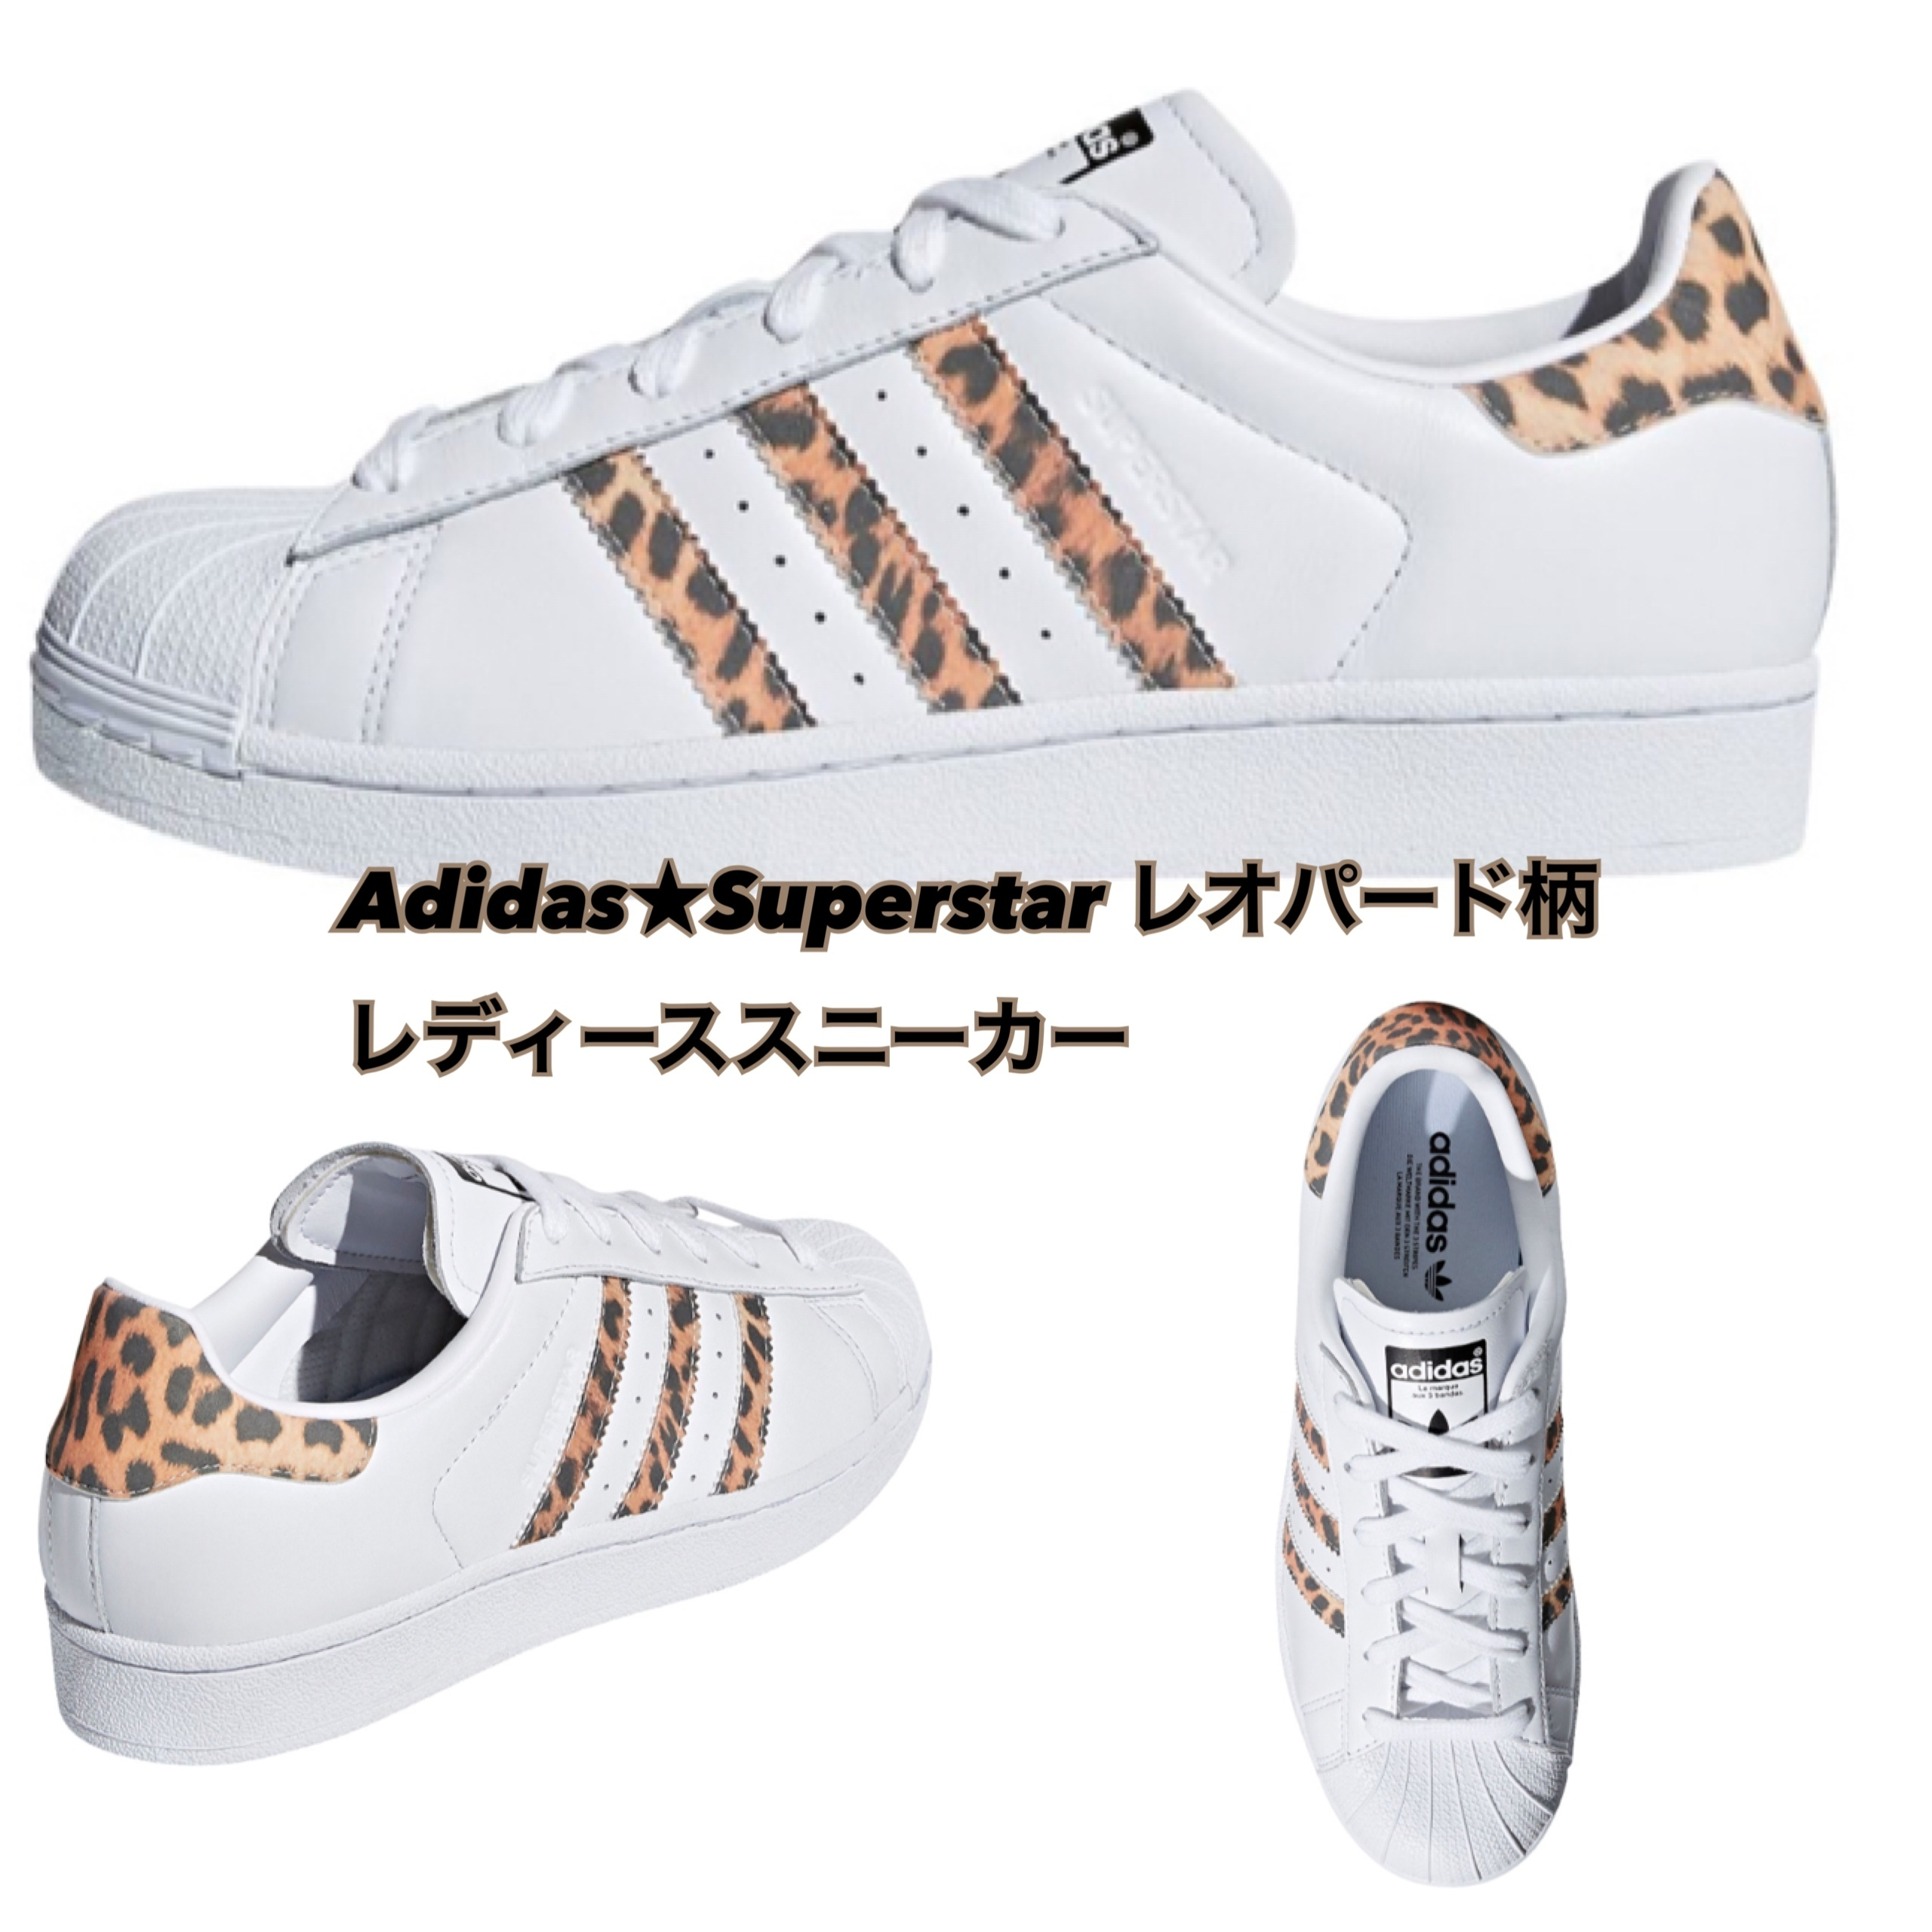 adidas superstars große sole